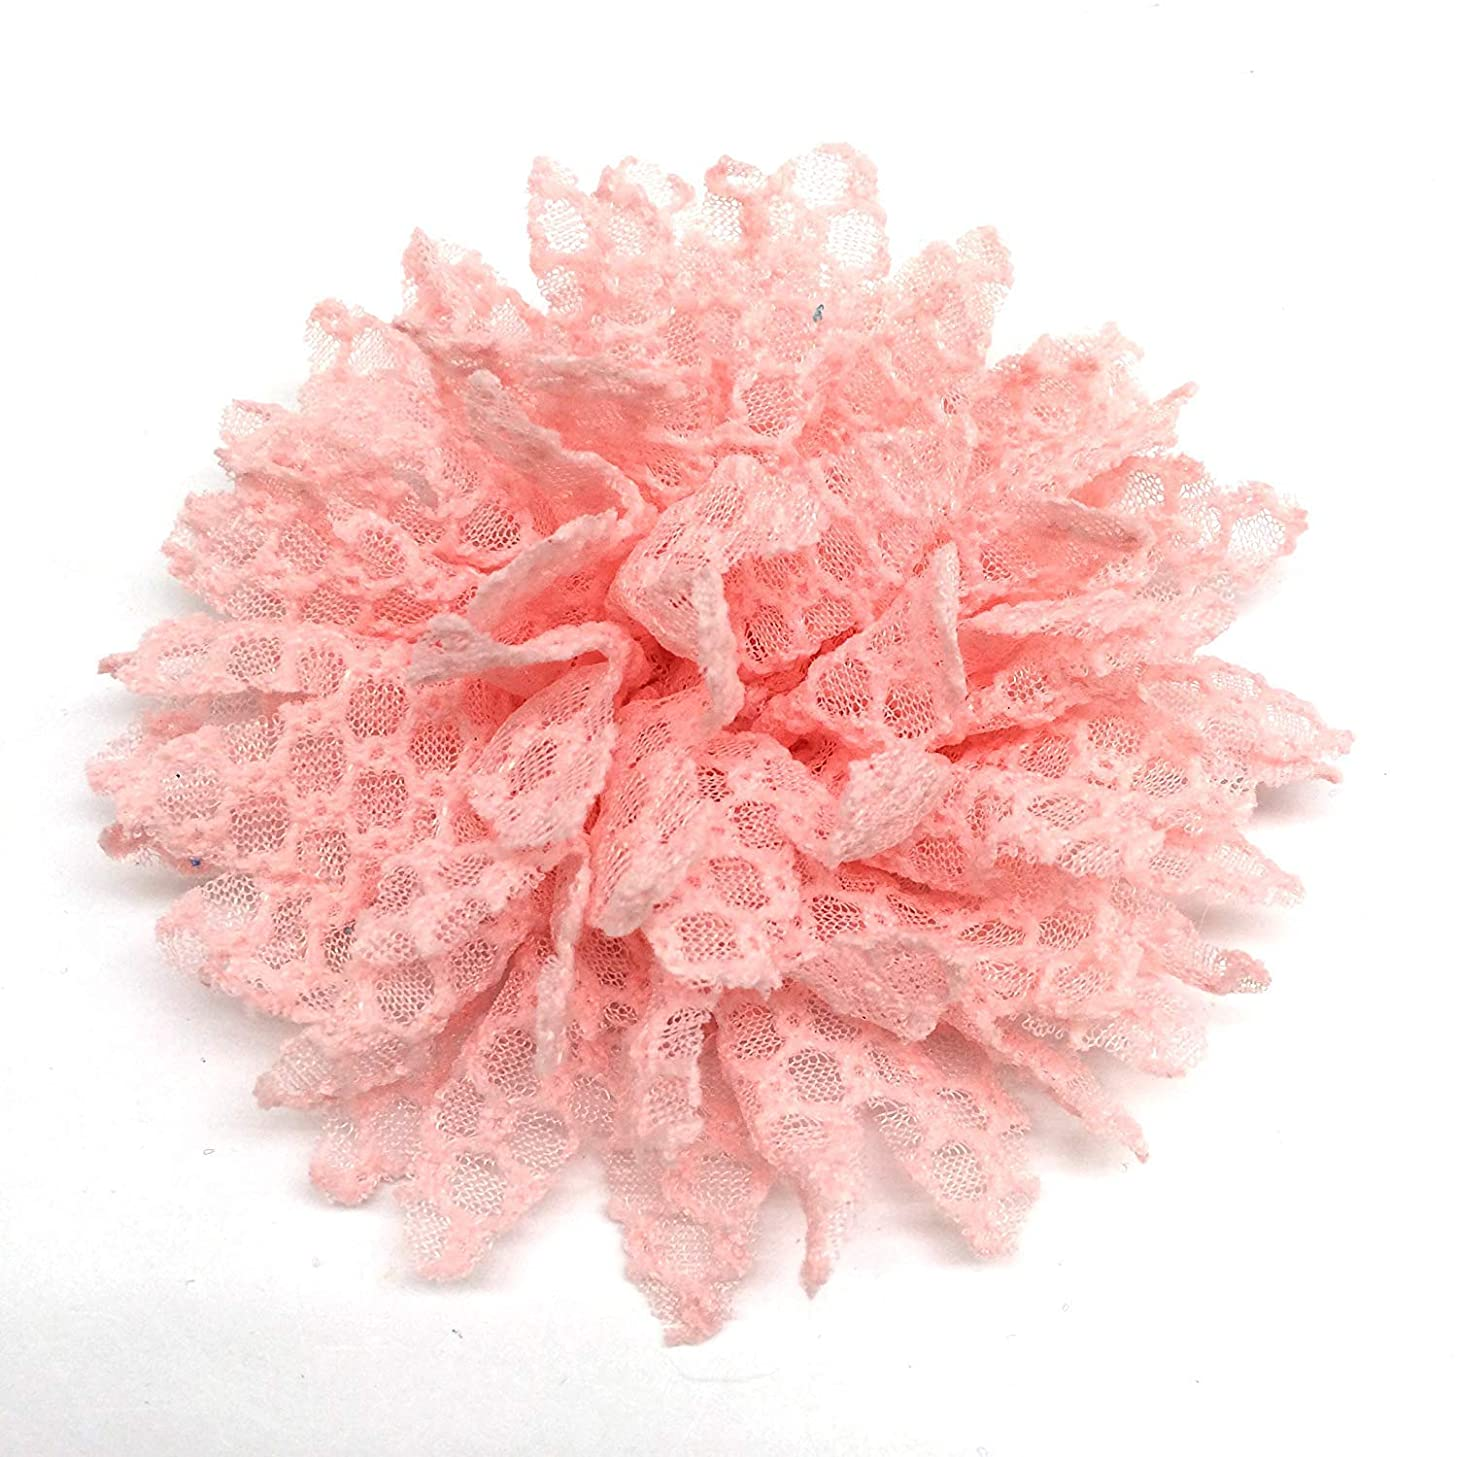 PEPPERLONELY 10PC Set Pink Lace Petal Fabric Flowers, 4 Inch